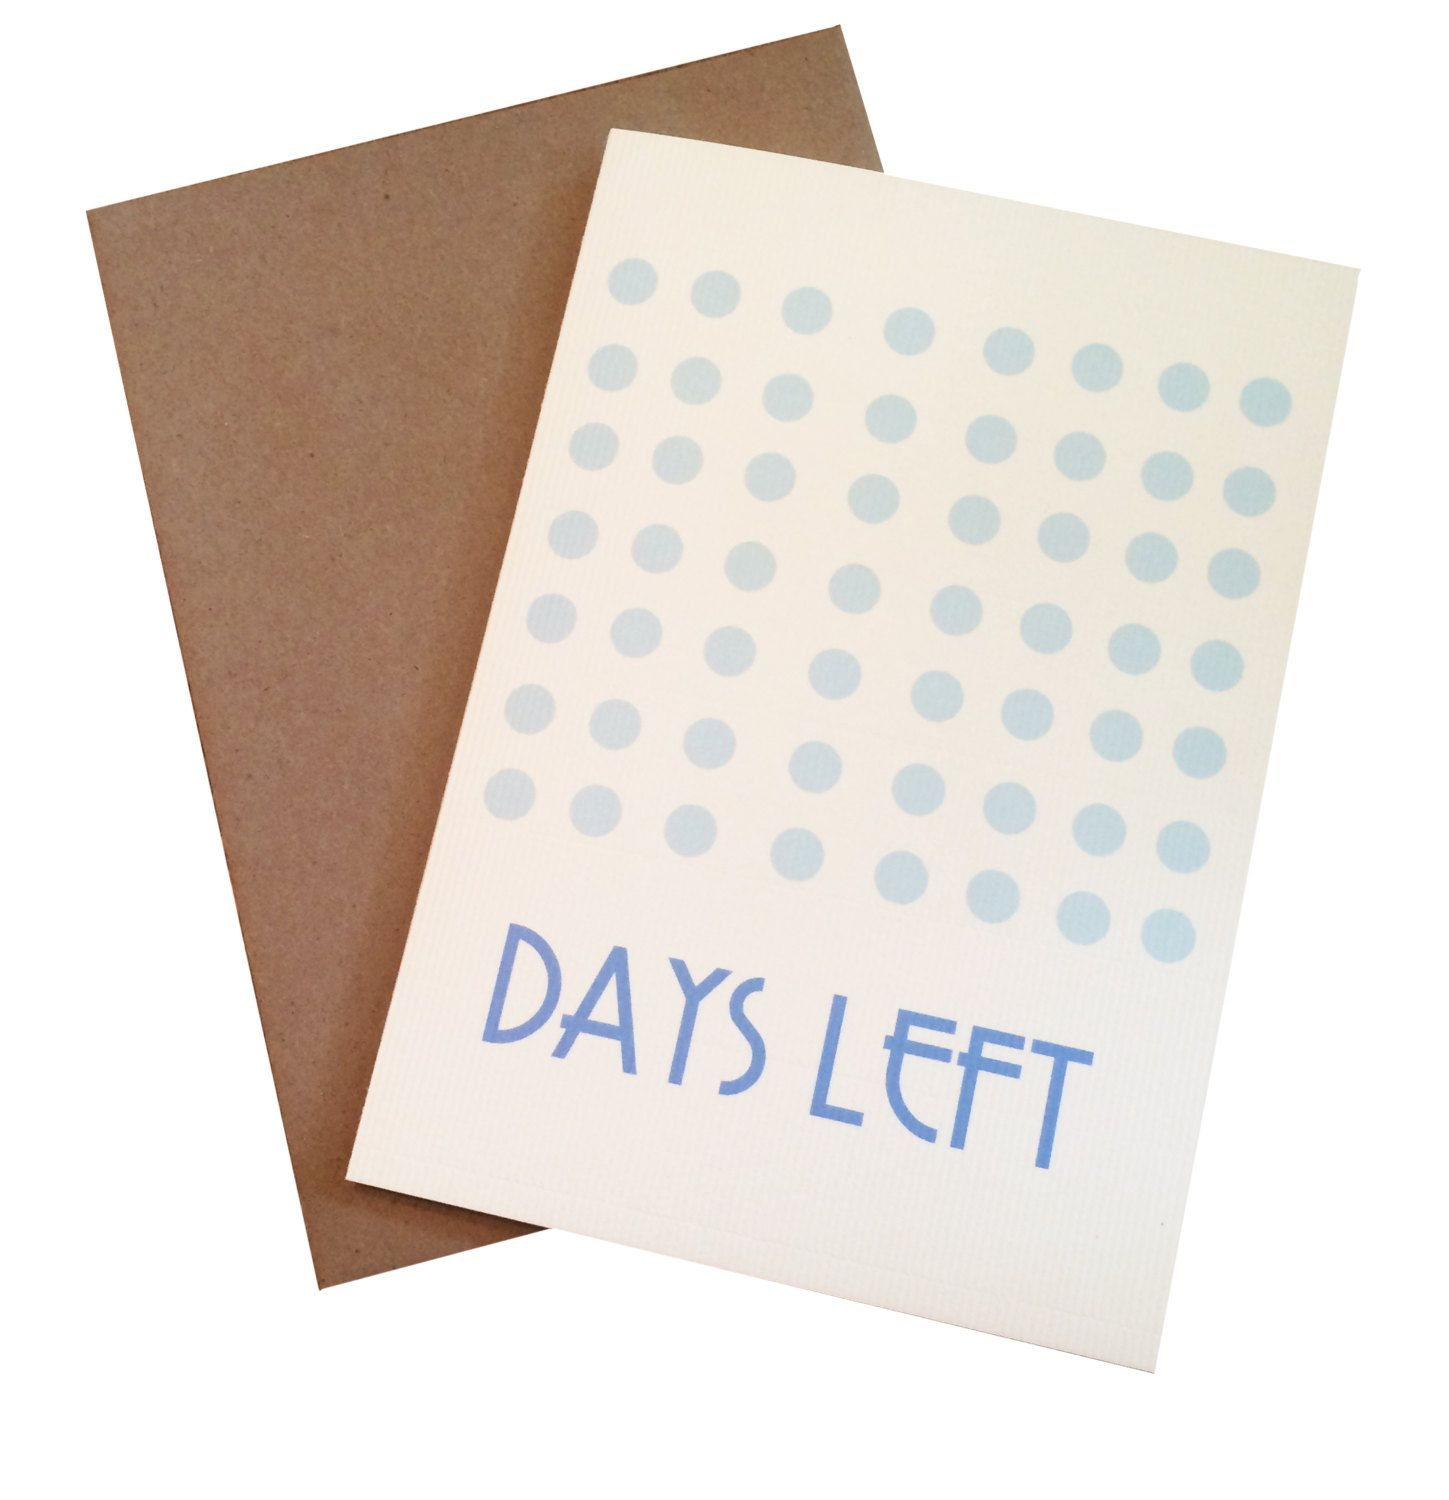 Military Greeting Card Days Left Care Package Boot Camp Basic